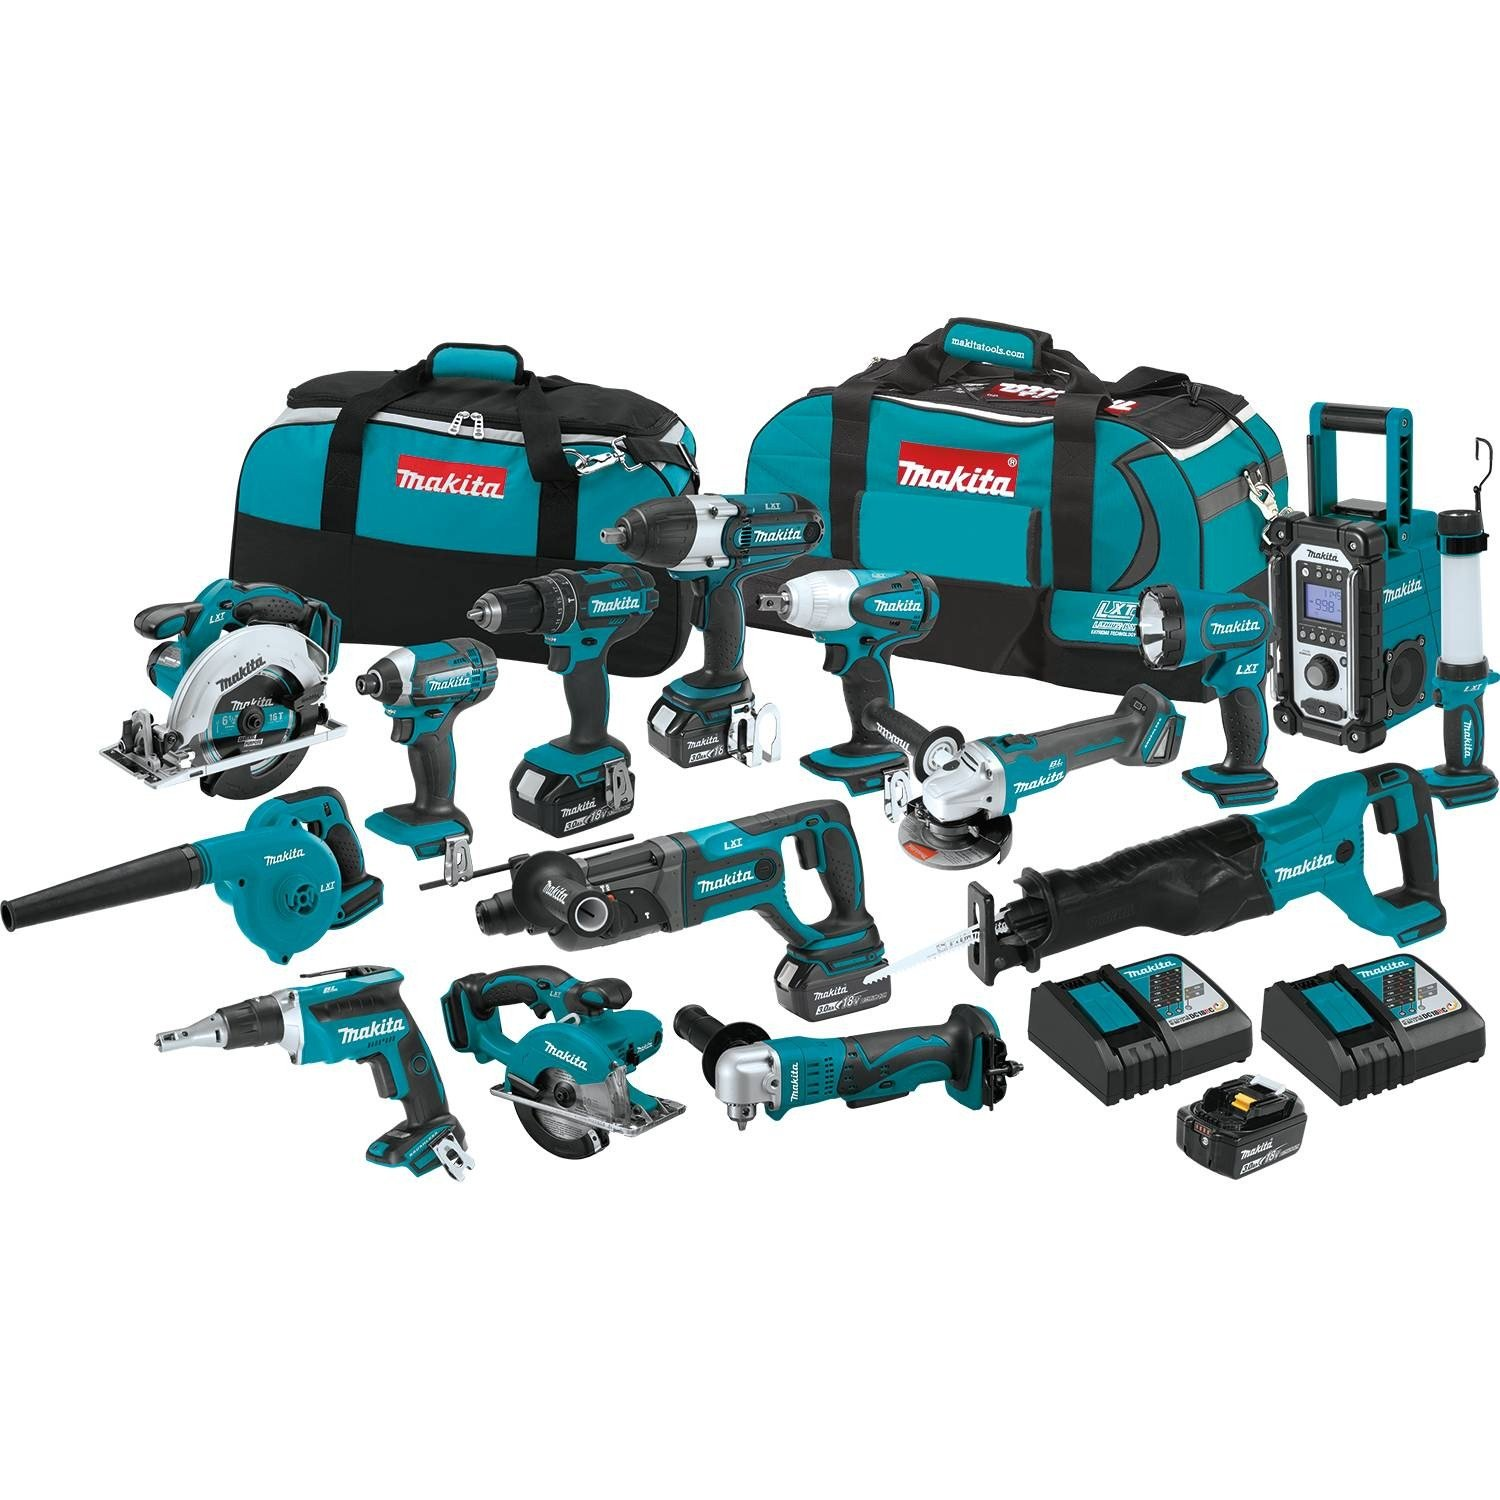 Makita XT1501 3.0Ah 18V LXT Lithium-Ion Cordless Combo Kit 15 Piece